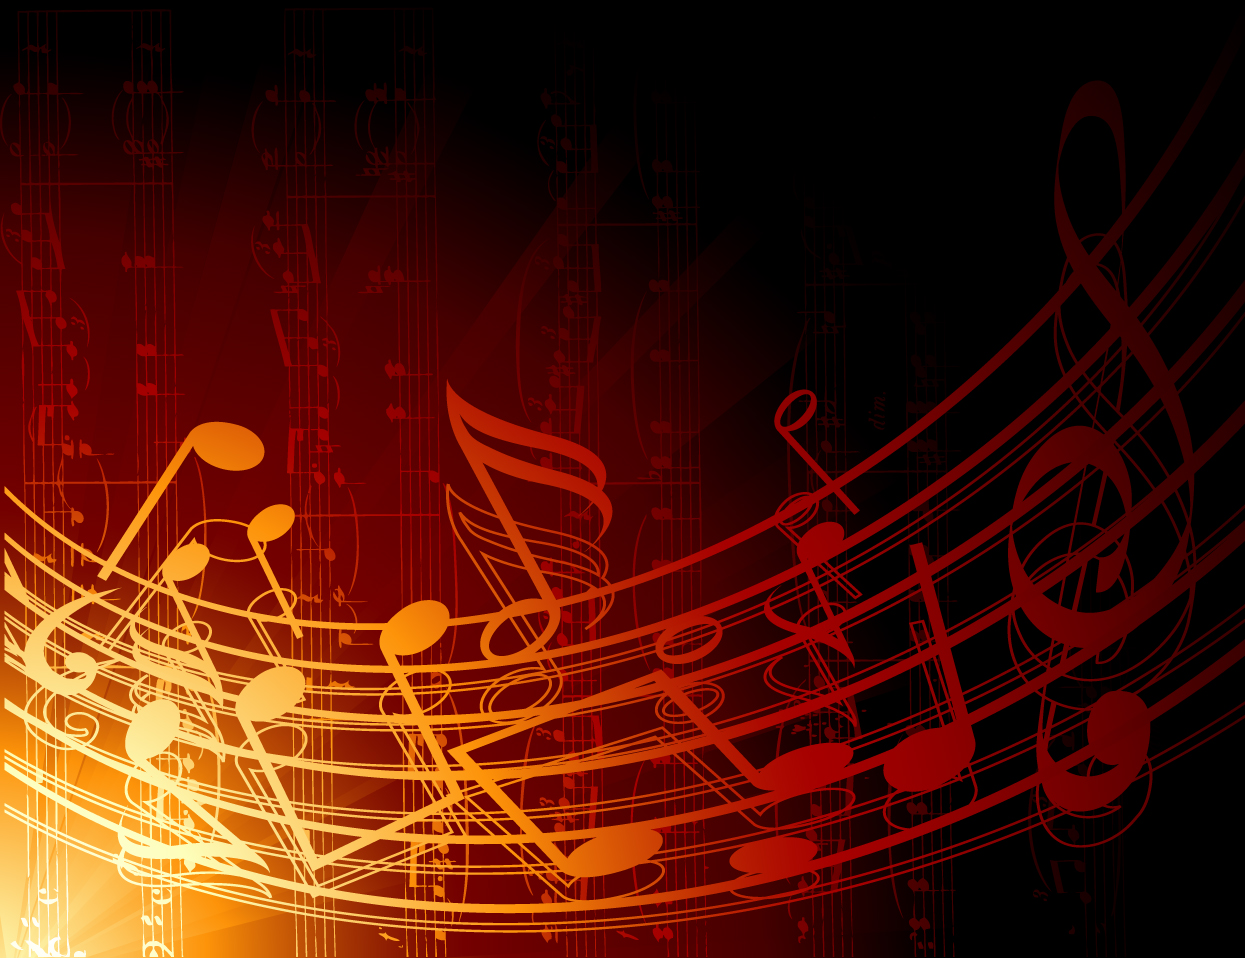 Double D Booking Abstract Music Background   Double D Booking 1245x958